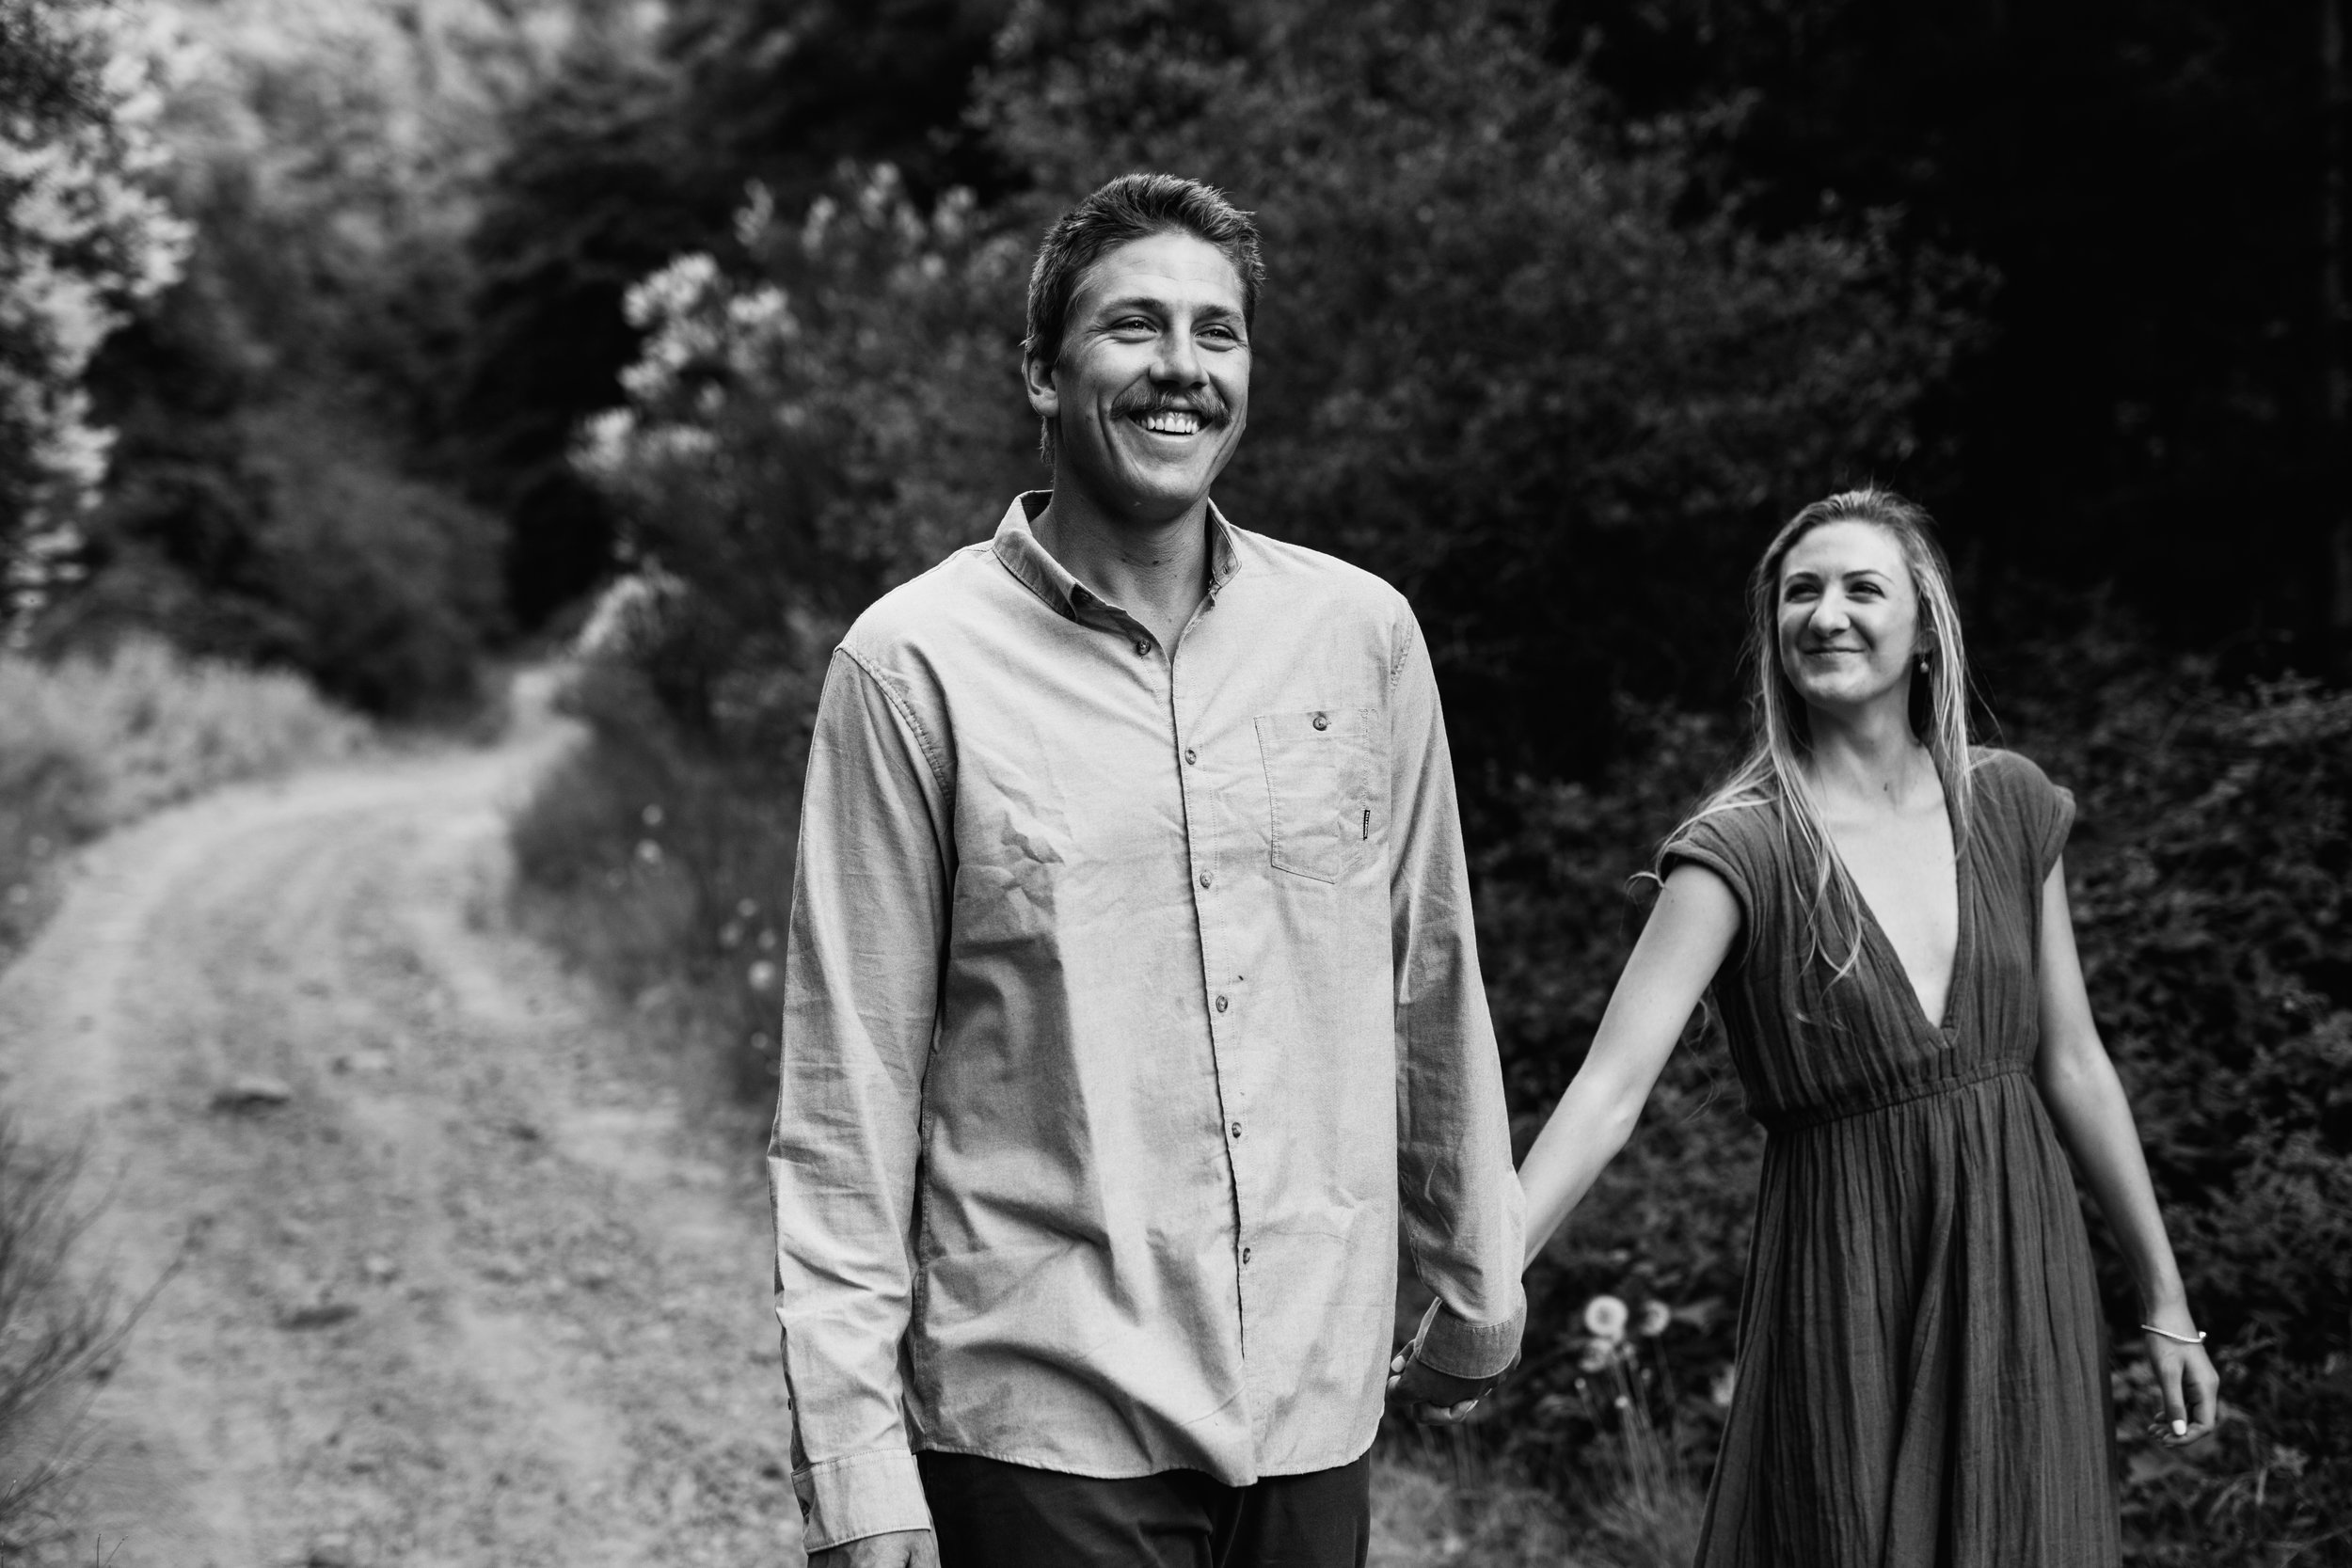 Rachel&Tommy_Engagements27.jpg